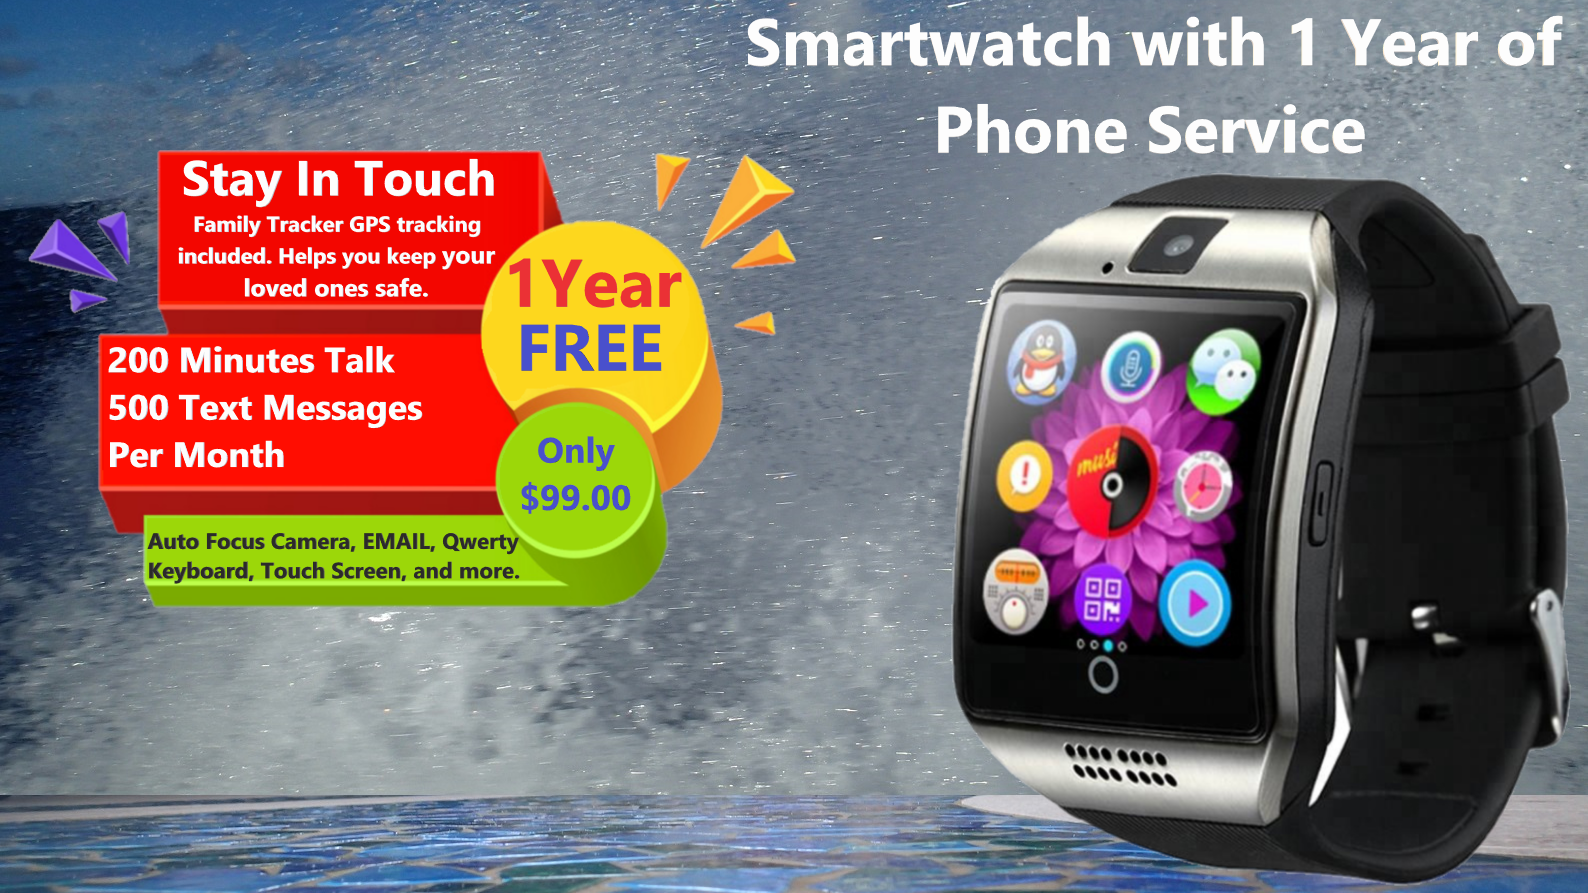 Smartwatch and Wireless Earbuds with 1 Year FREE Basic Phone Service and Family Tracker